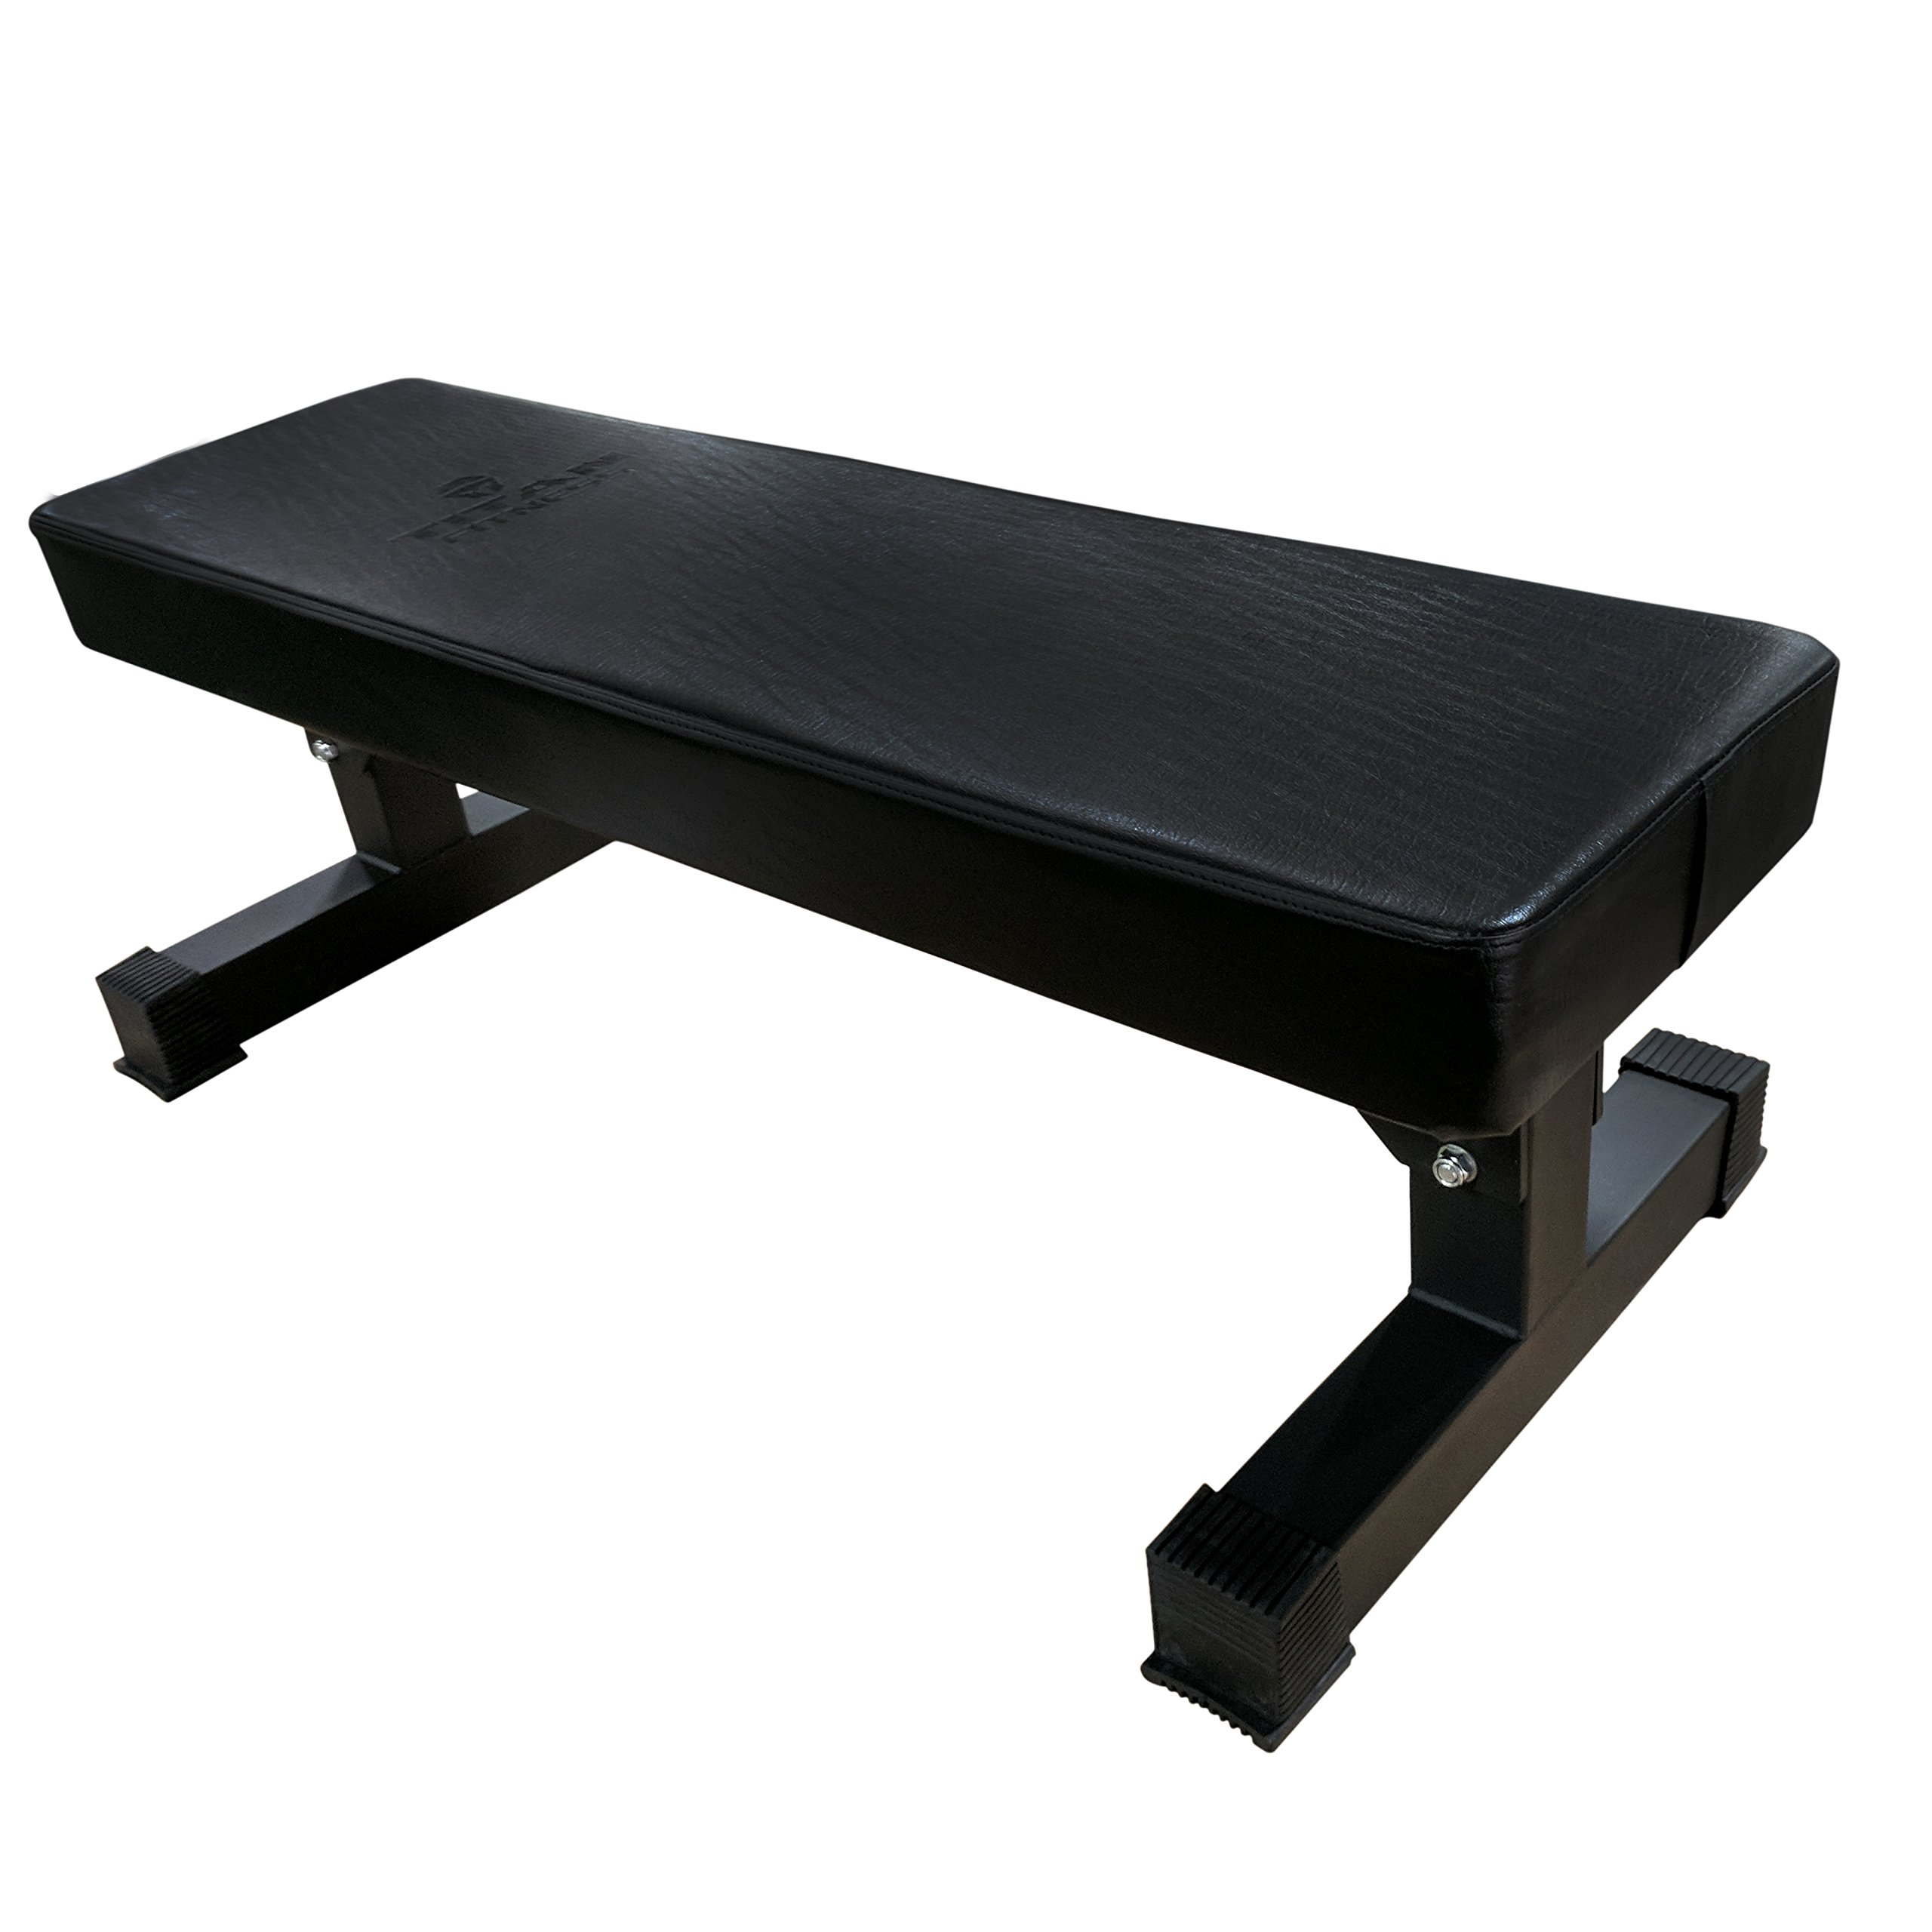 Titan Hefty Thick Pad Weight Bench - 1,200 lb Capacity by Titan Fitness